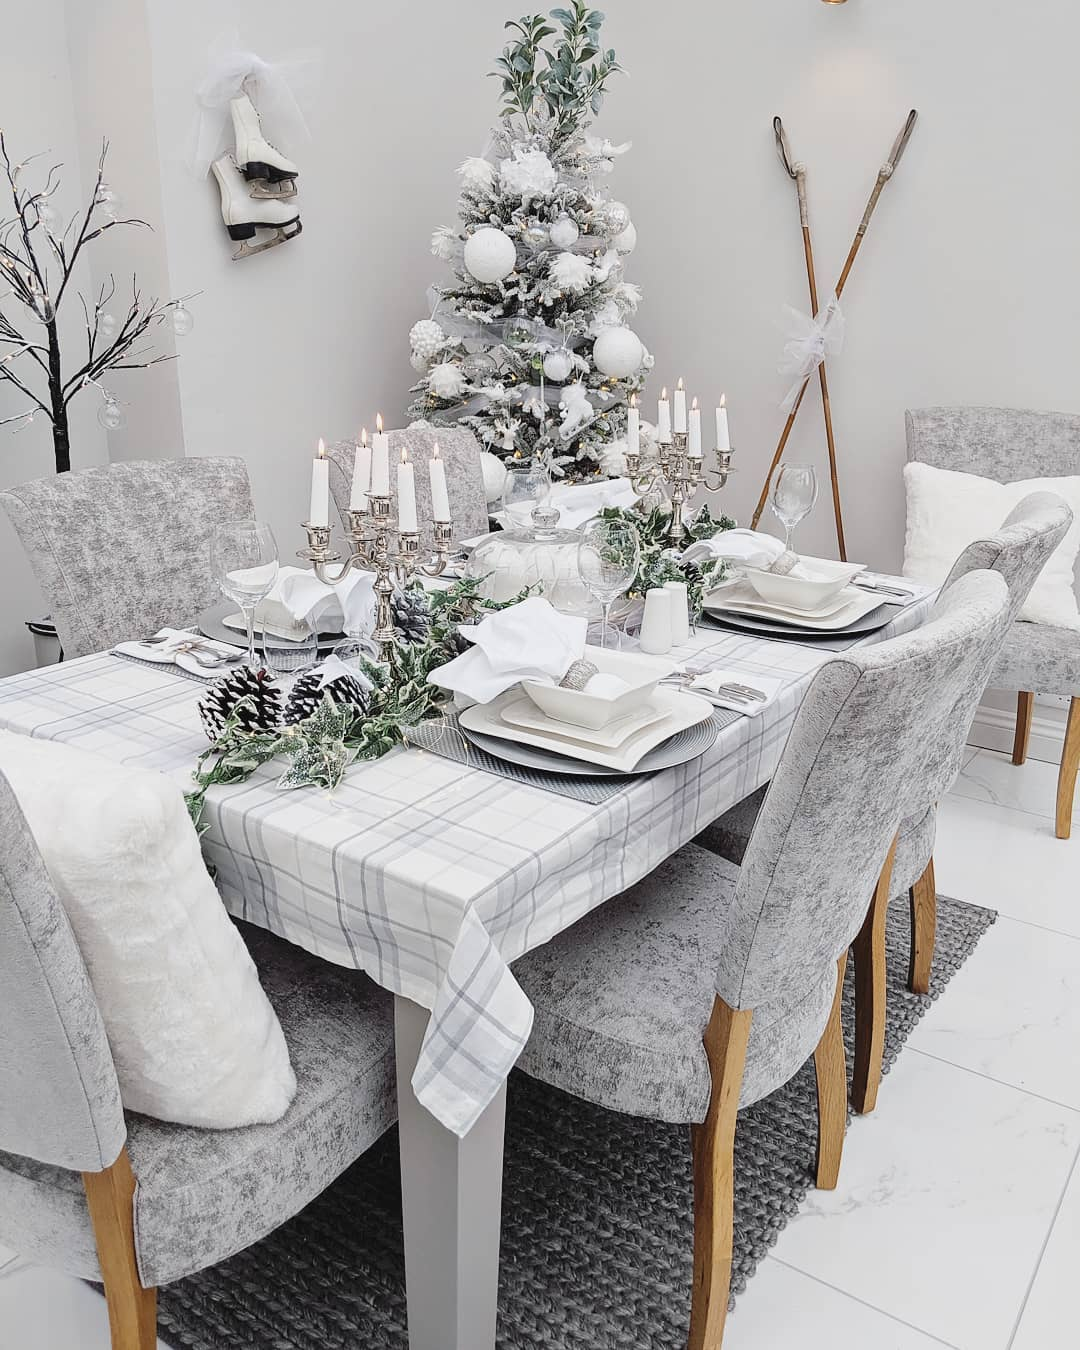 How to create a festive dining table with Samantha Roobottom